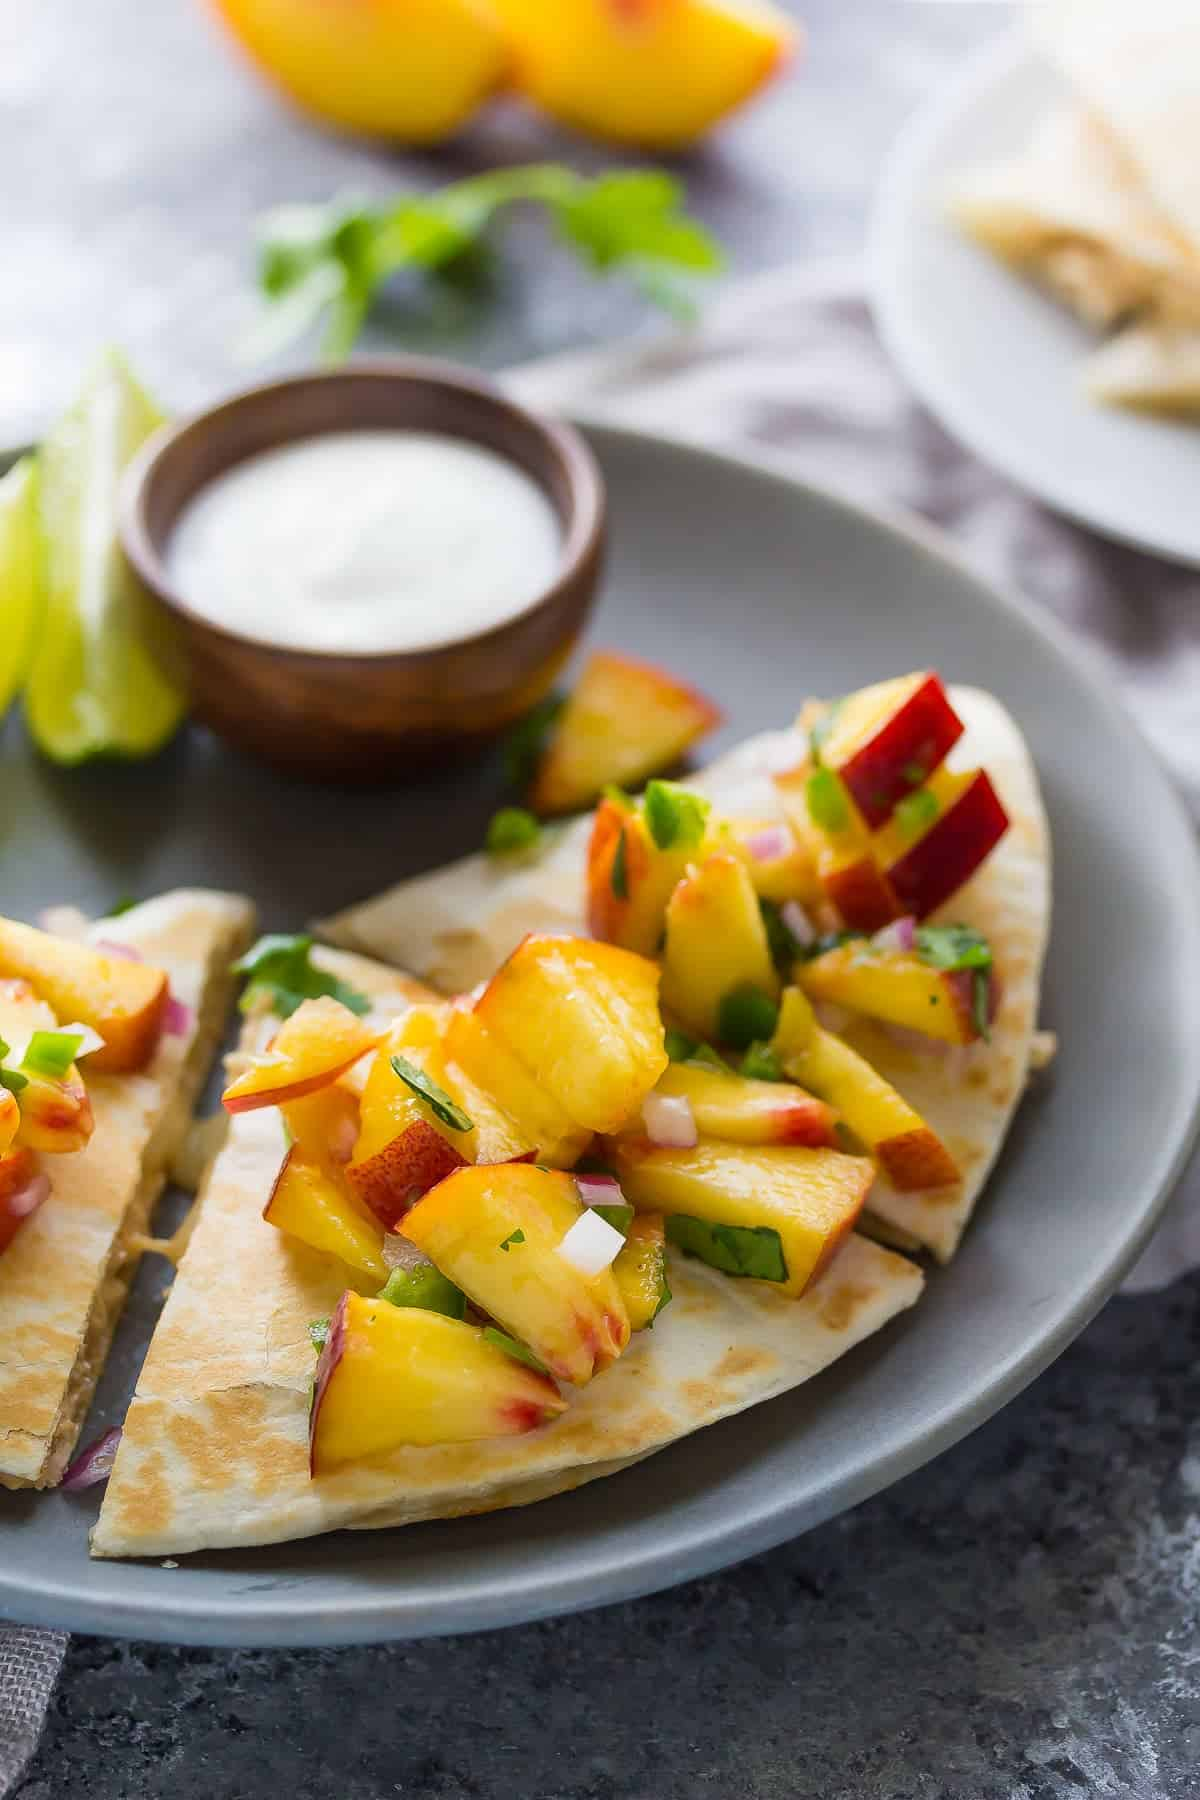 Sweet Chili Chicken Quesadillas with Peach Salsa